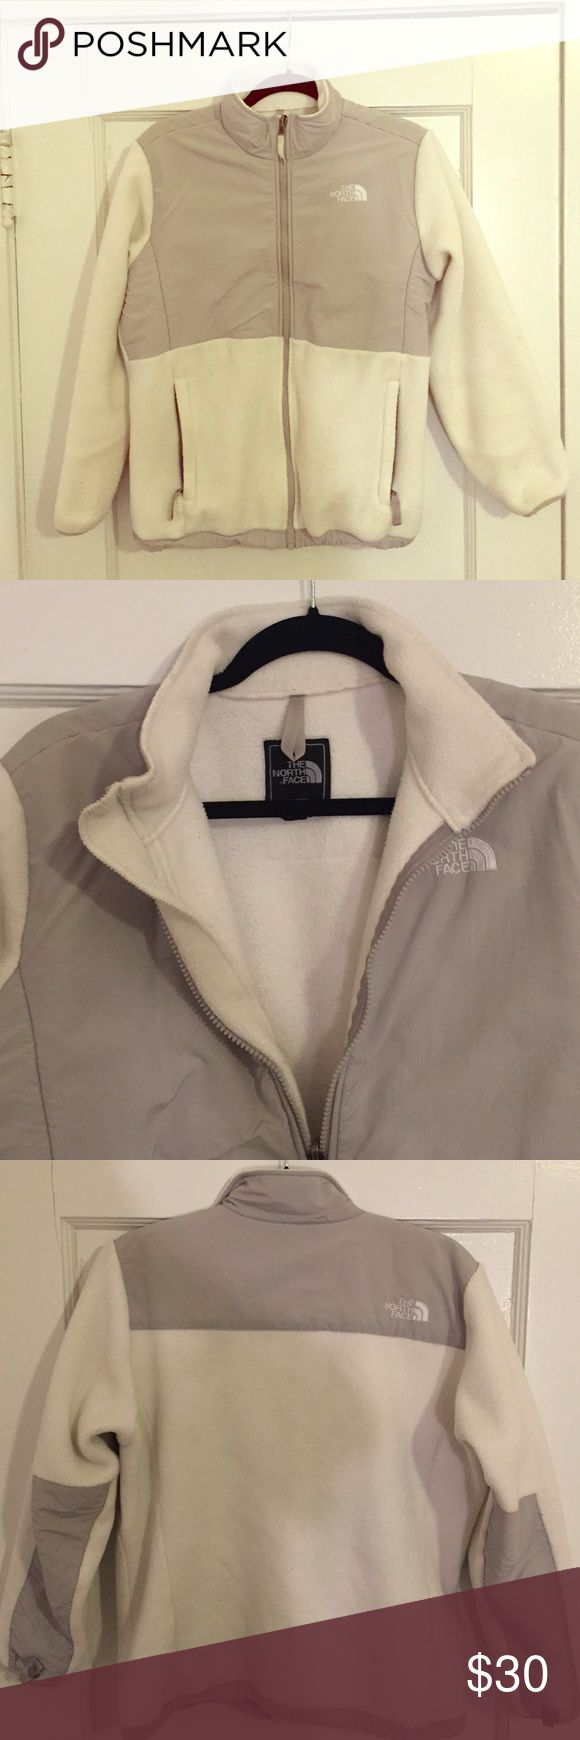 North Face white jacket White North Face jacket. Great condition and barely worn! It's an XL girls but wears as women's small or medium. North Face Jackets & Coats